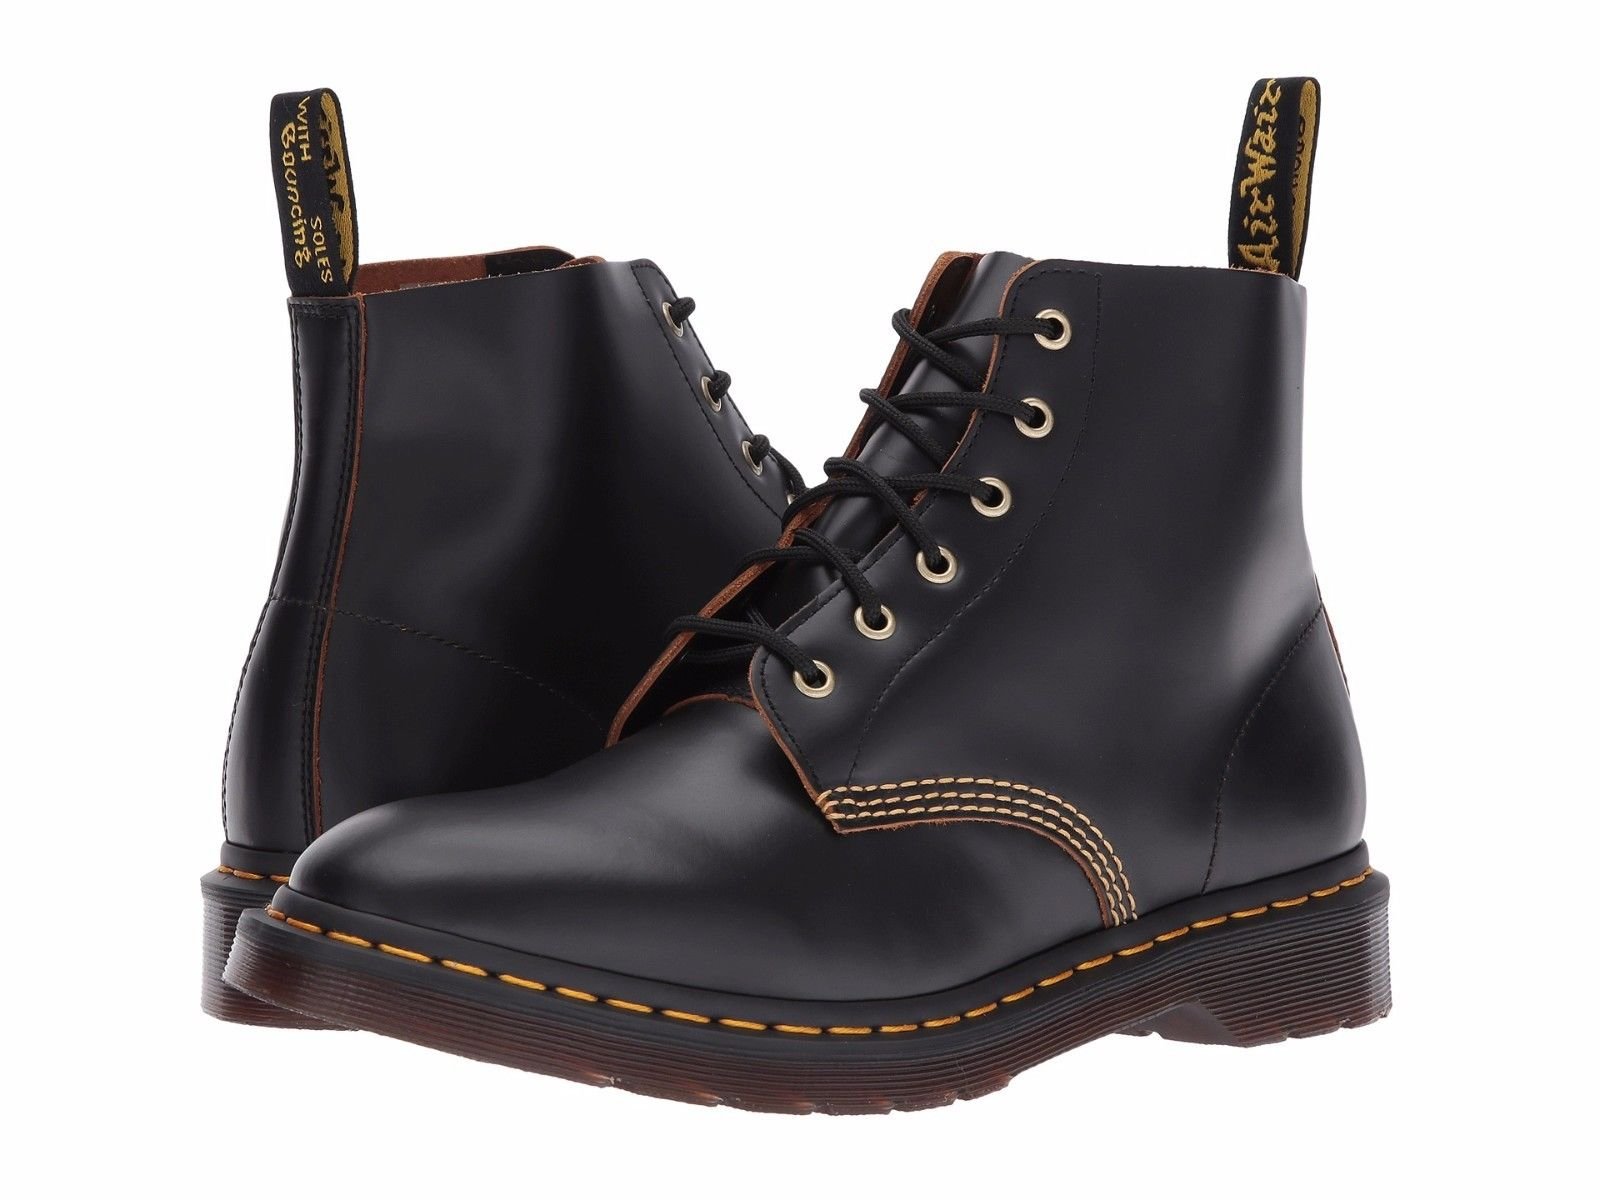 Dr. Martens 101 Archive Men's Shoes 6 Eyelet Boot 22701001 Black by Dr. Martens